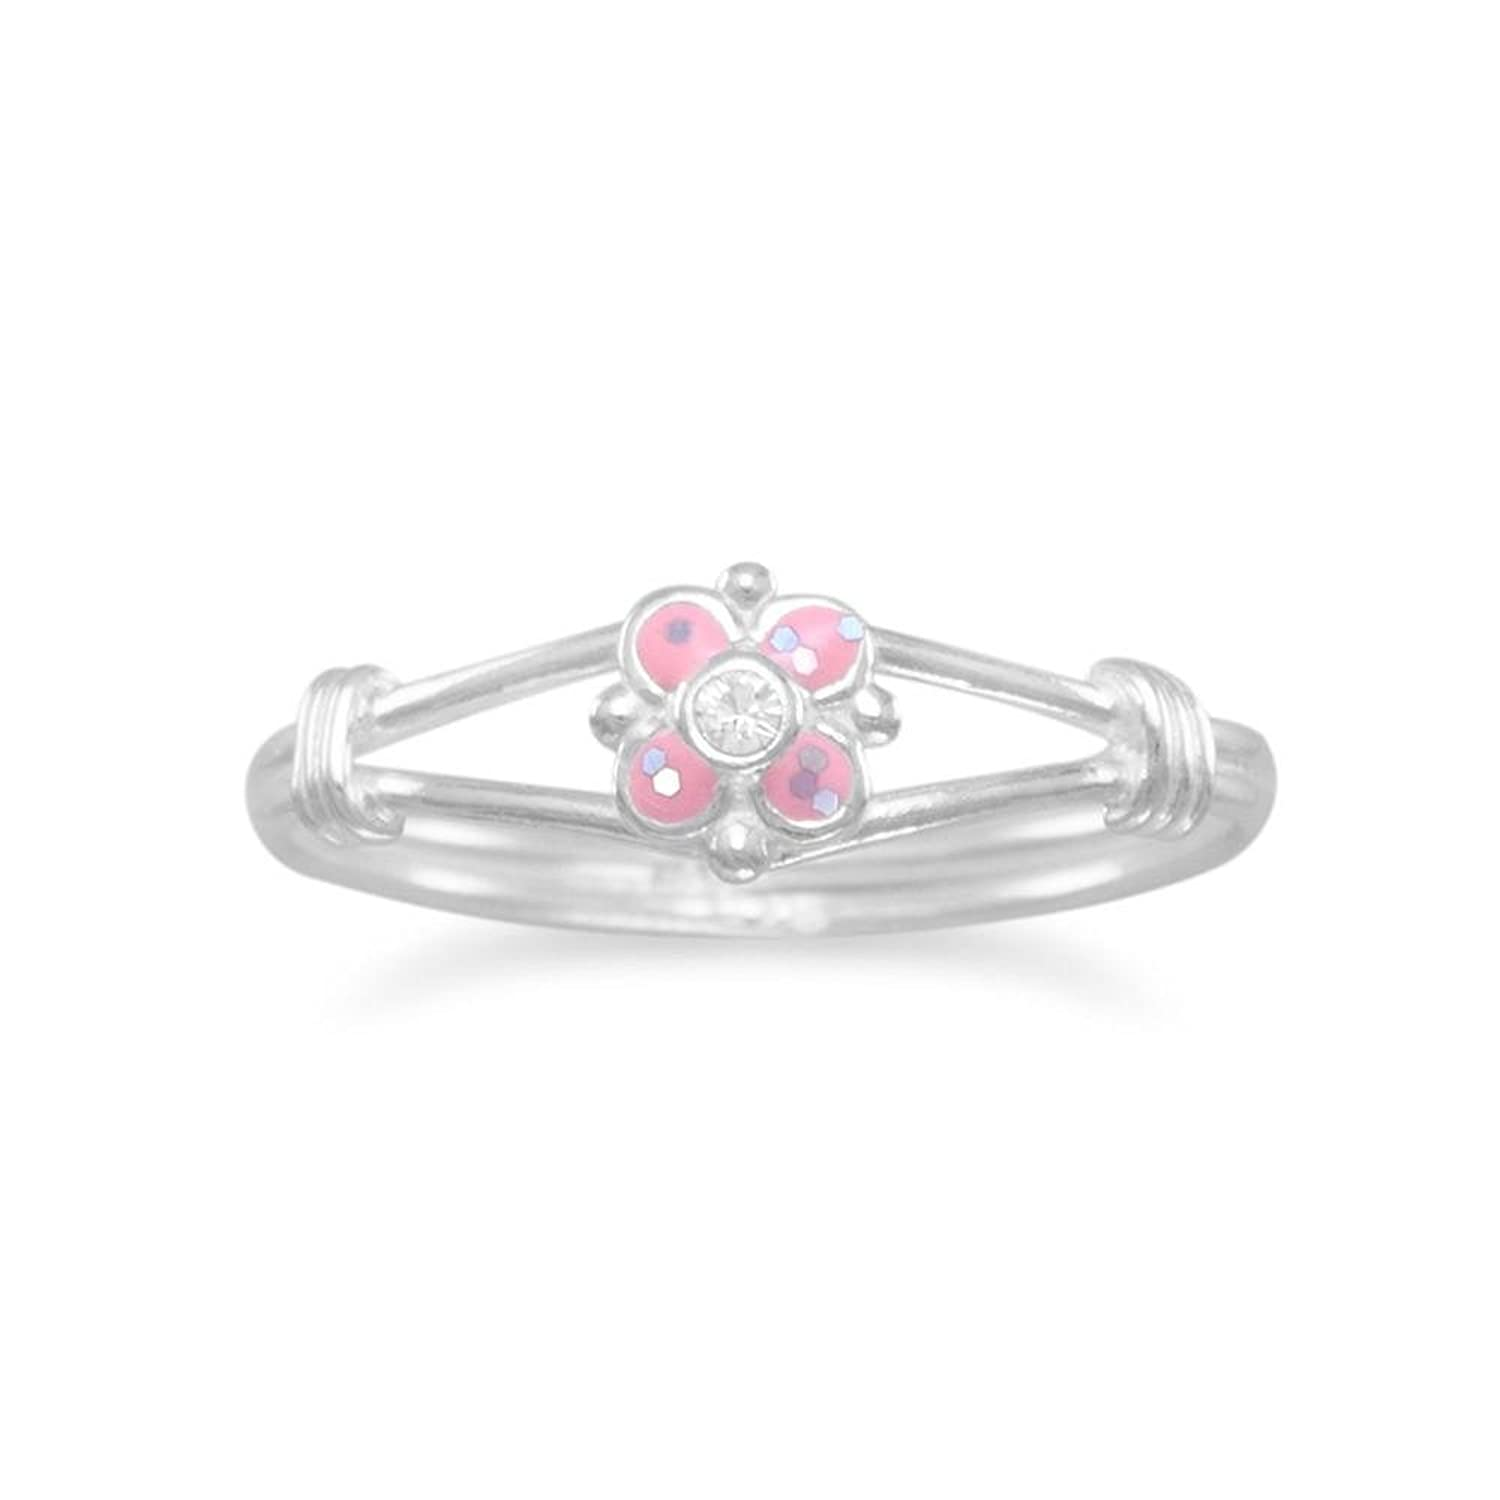 rose images tiffany square inspirations pink imposing diamond size gold rings walmart and for sapphireond sapphire full light ring engagement of at